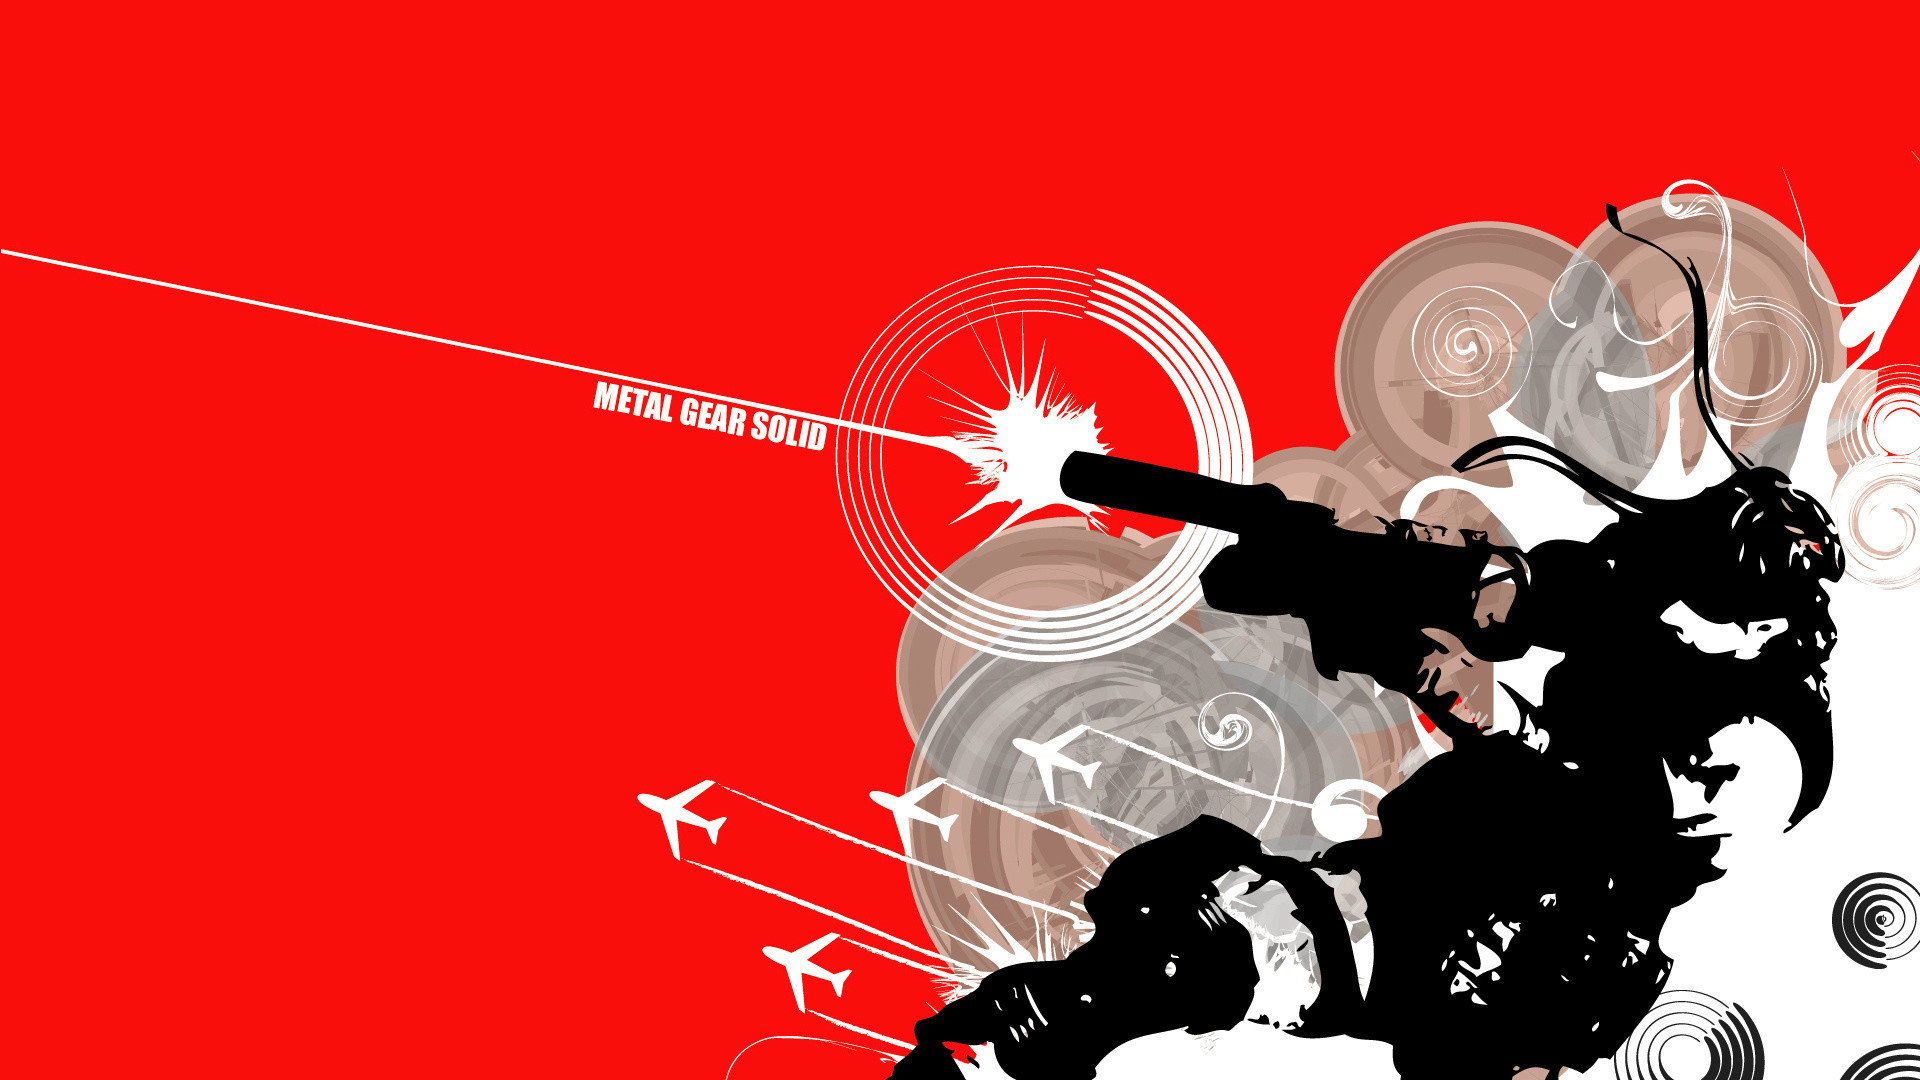 1920x1080 Metal Gear Solid 1080p HD Gaming Wallpaper #2142 HD Game Wallpaper .